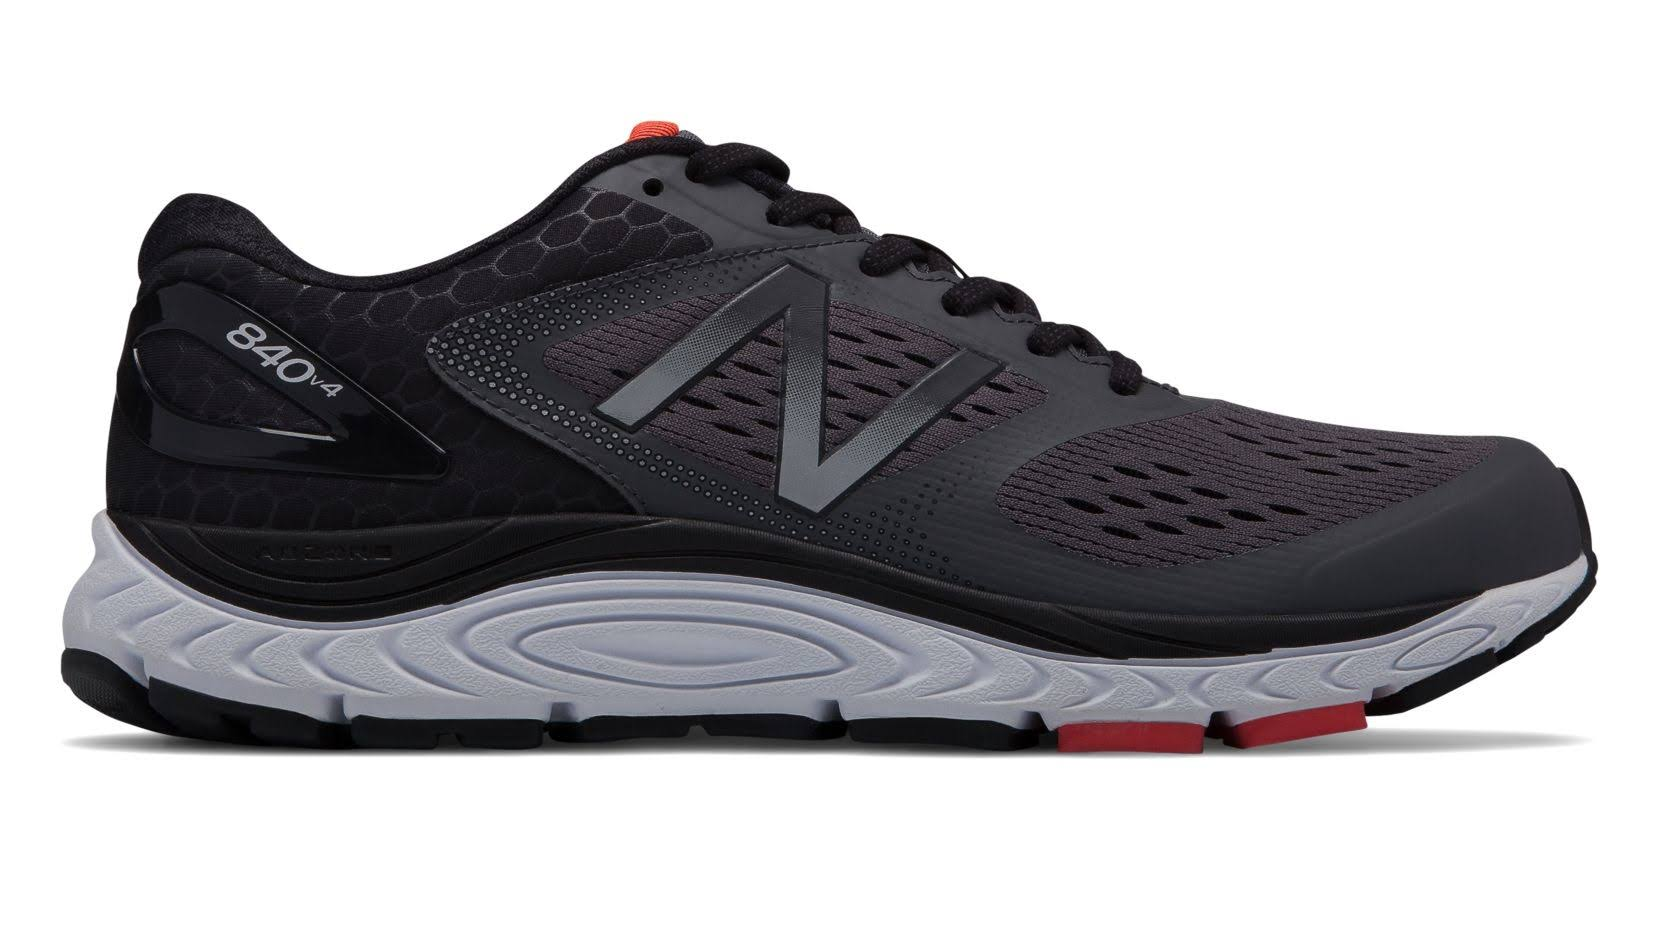 New Balance 840v4 Shoe - Men's Running